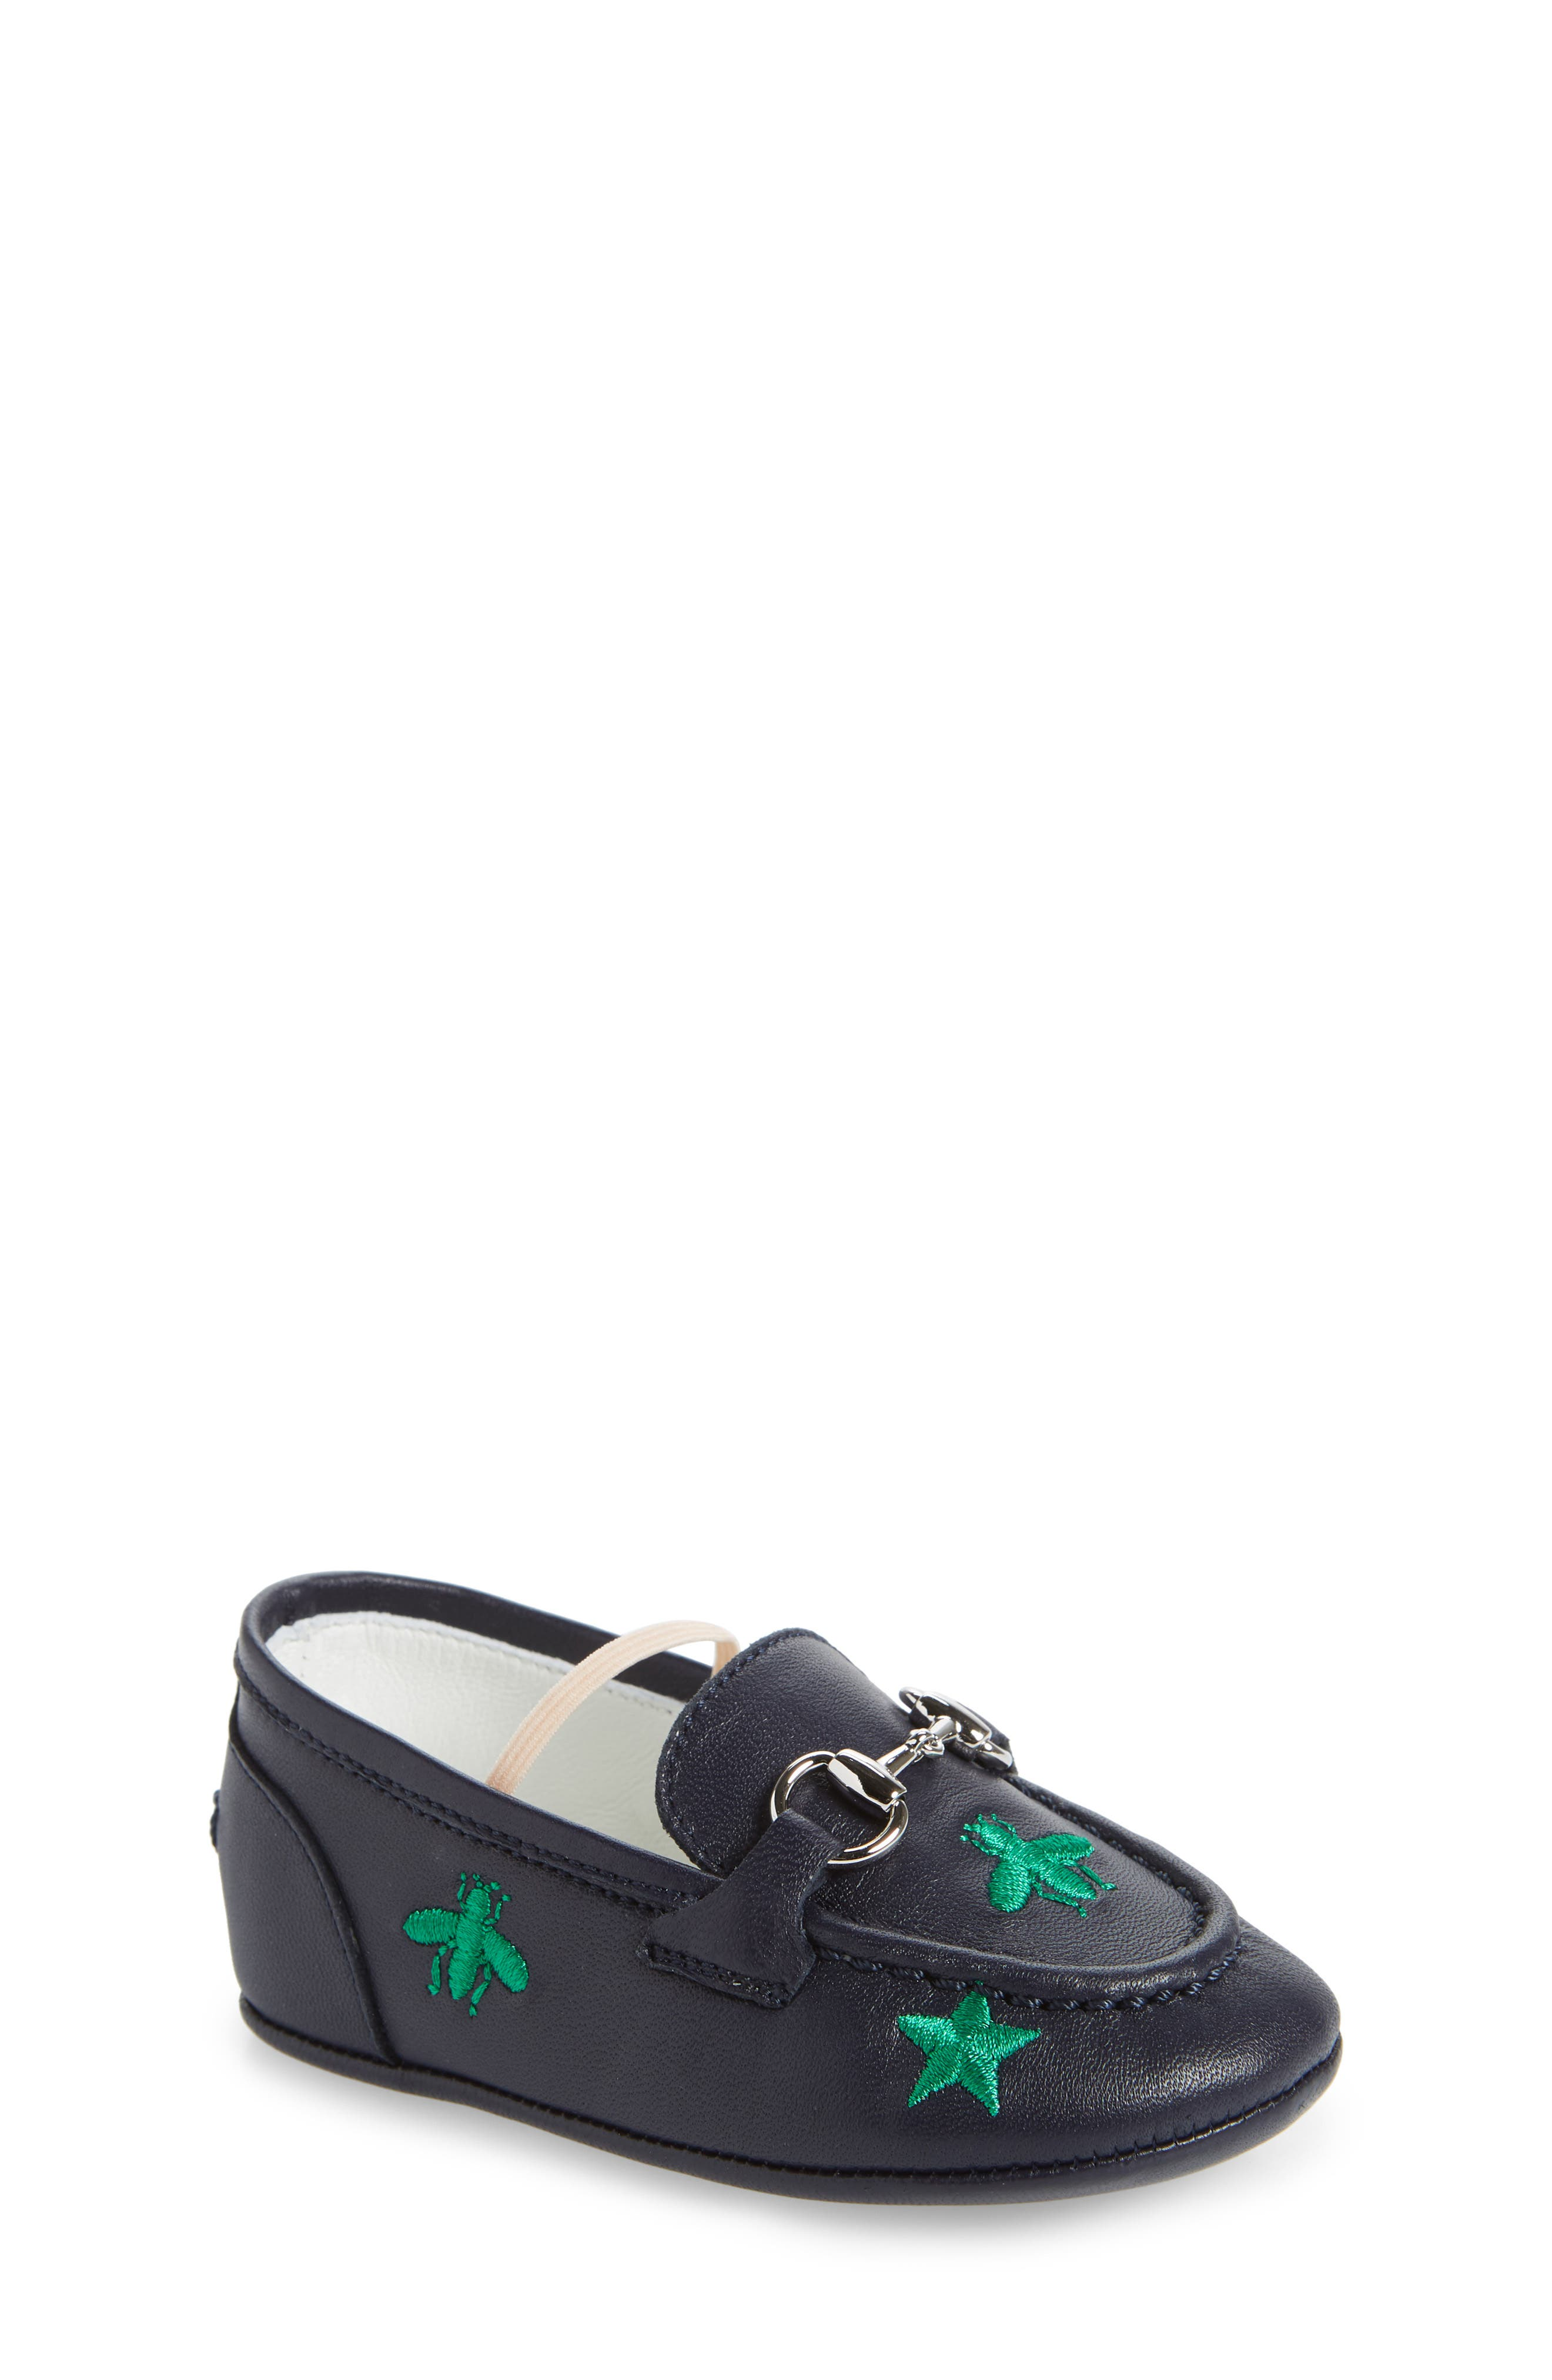 Gucci Baby Jordaan Embroidered Crib Loafer